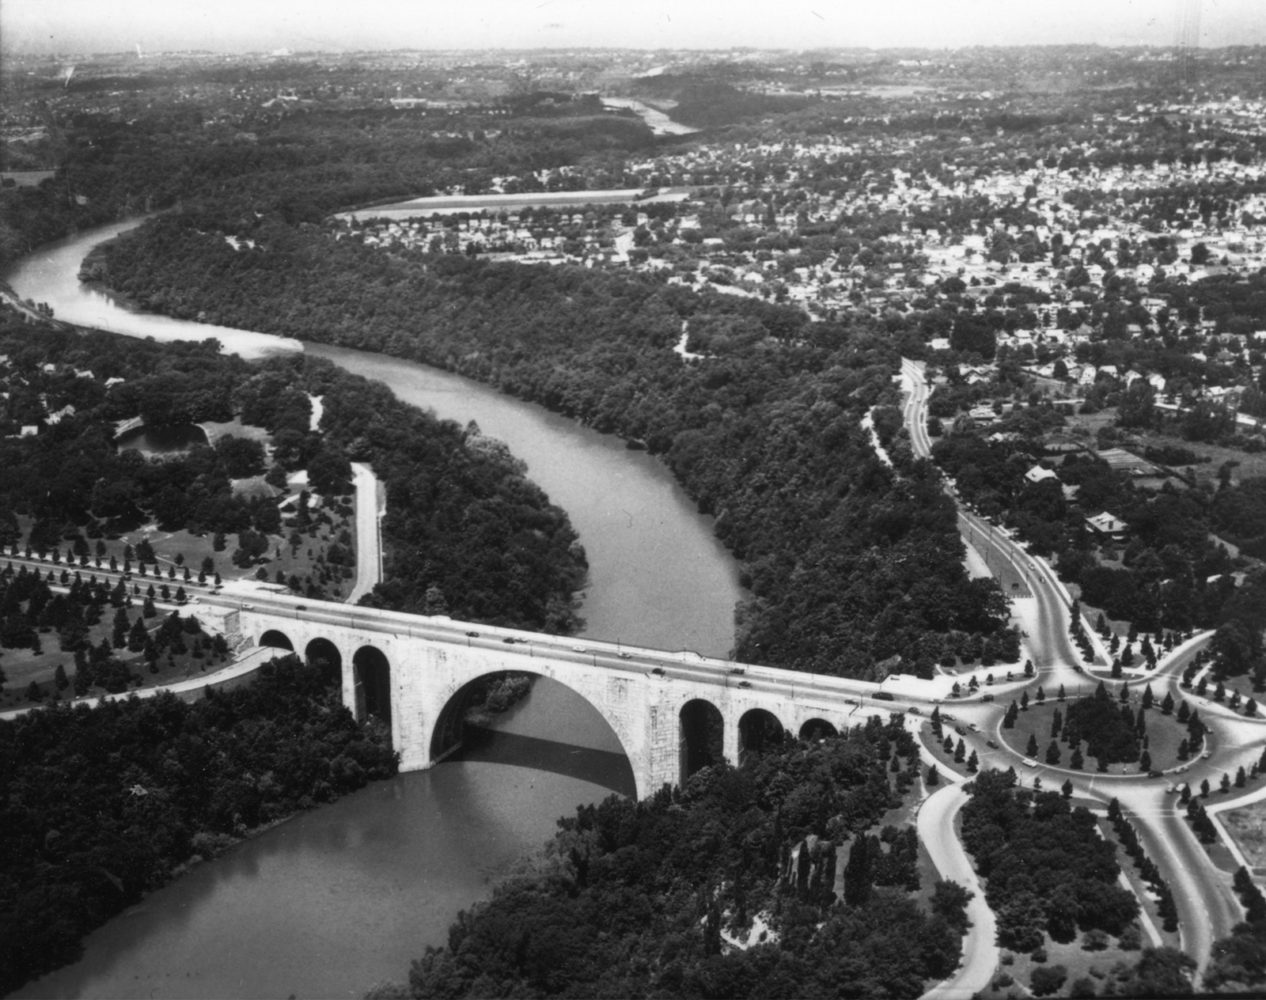 Aerial view of Veterans Memorial Bridge with traffic circle on Saint Paul Boulevard in Rochester, New York - photo from City of Rochester